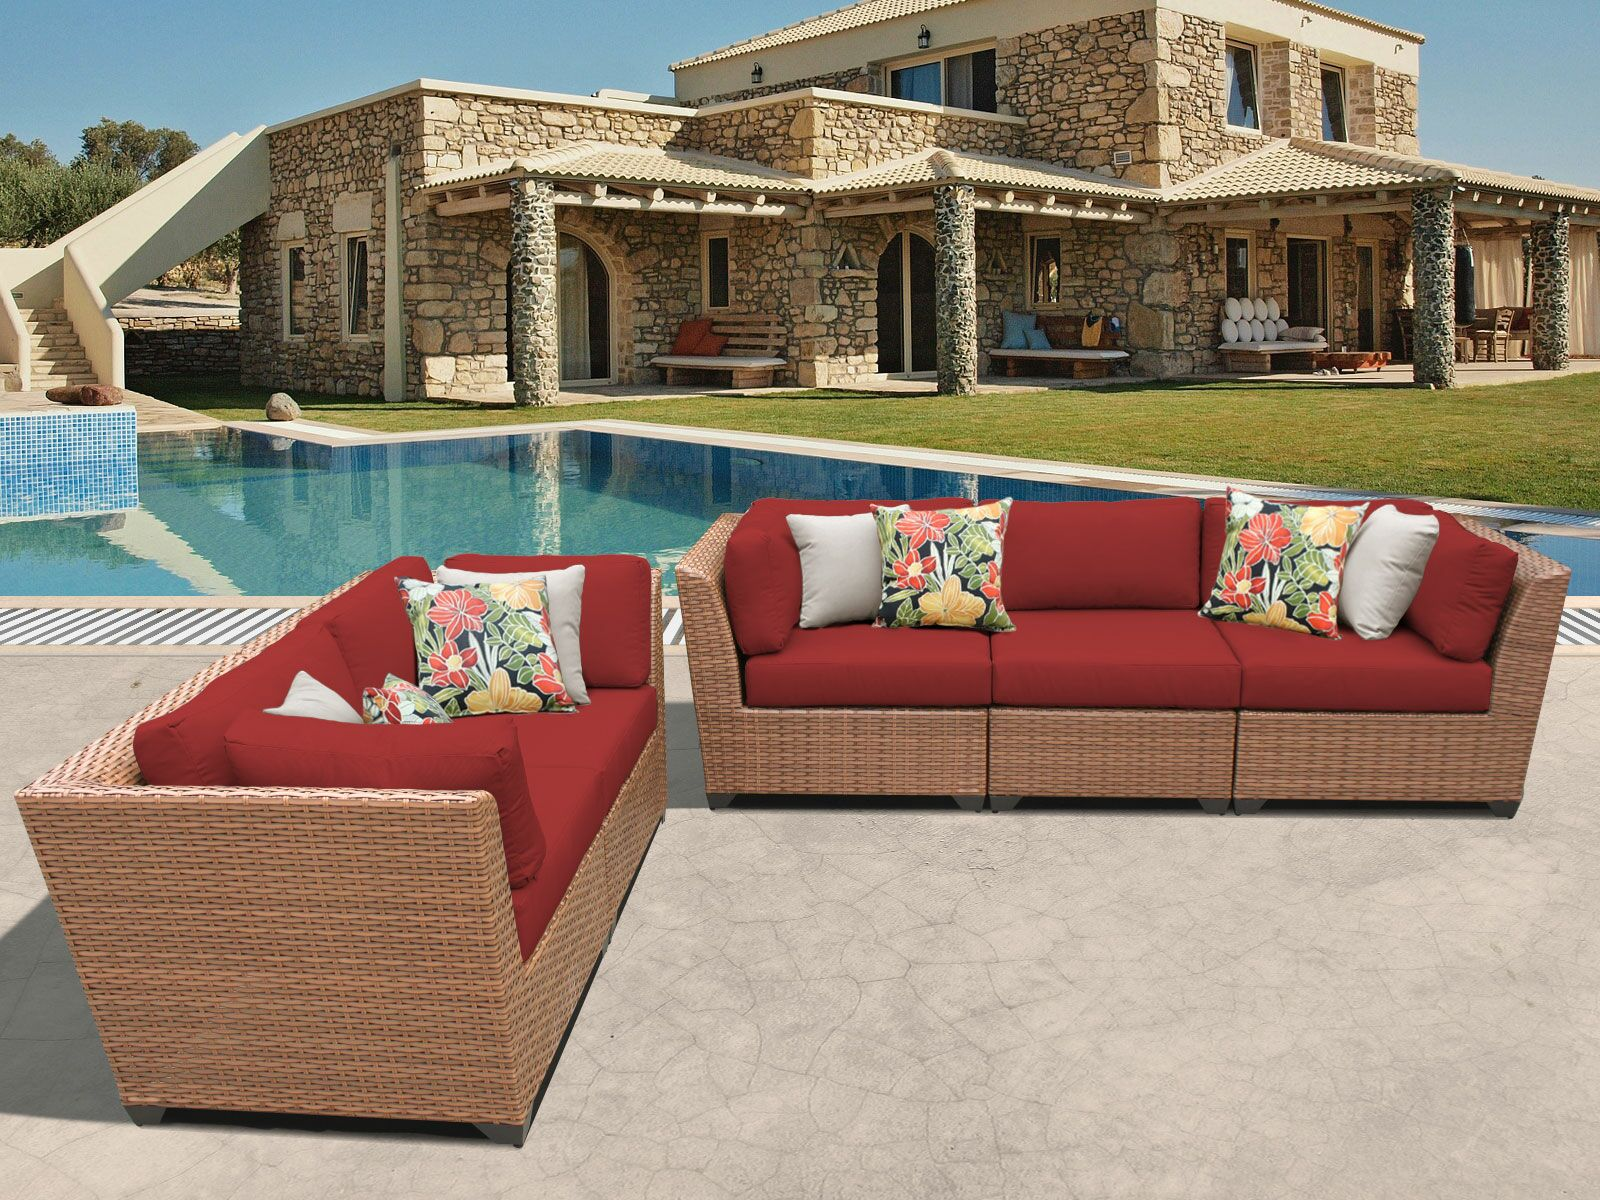 East Village 5 Piece Sectional Set with Cushions Color: Terracotta